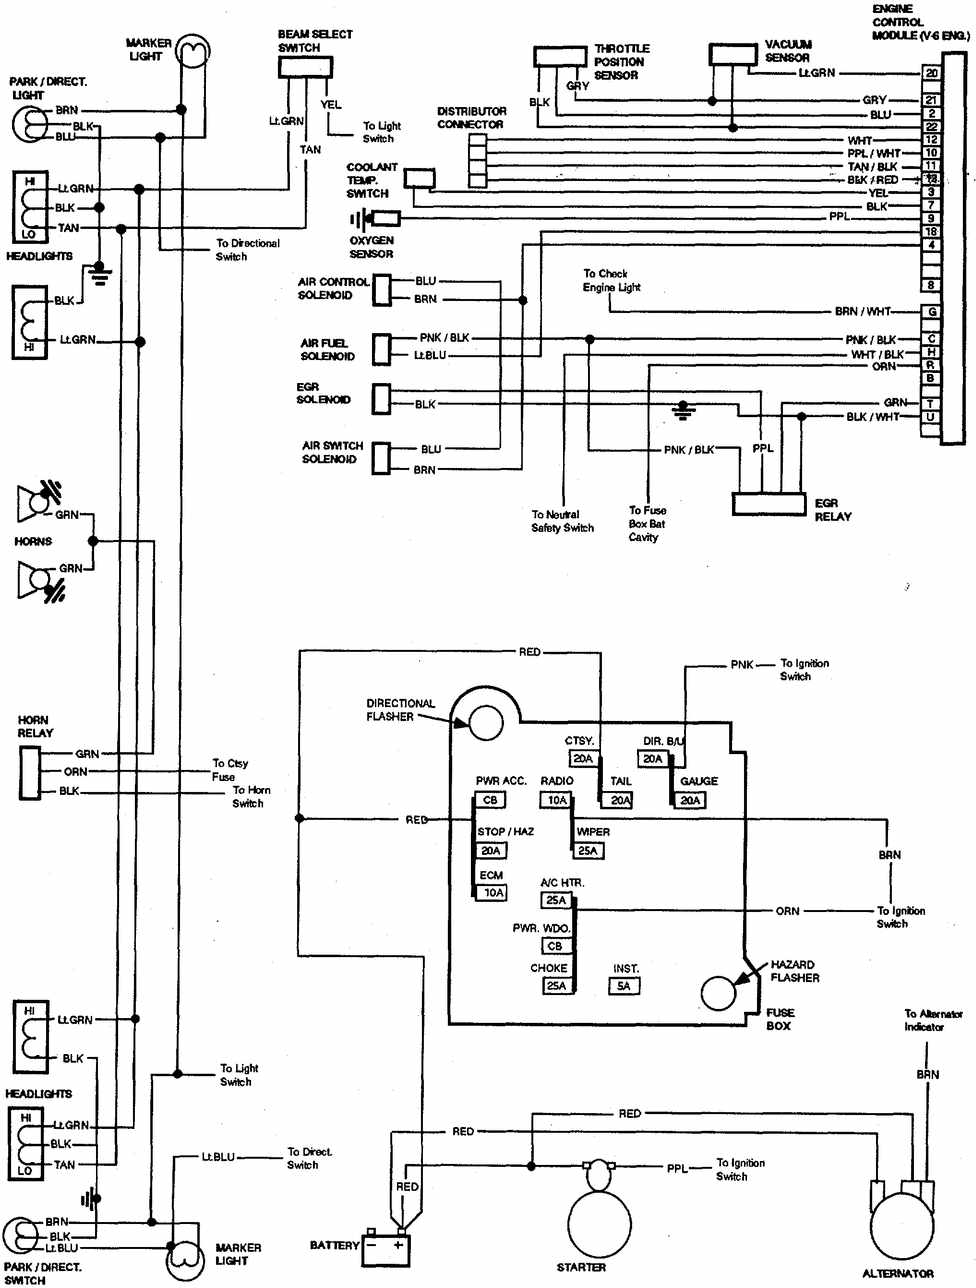 1983 chevy truck headlight wiring wiring diagram fascinating 1983 chevrolet c10 wiring diagram 1983 chevrolet wiring diagram #4